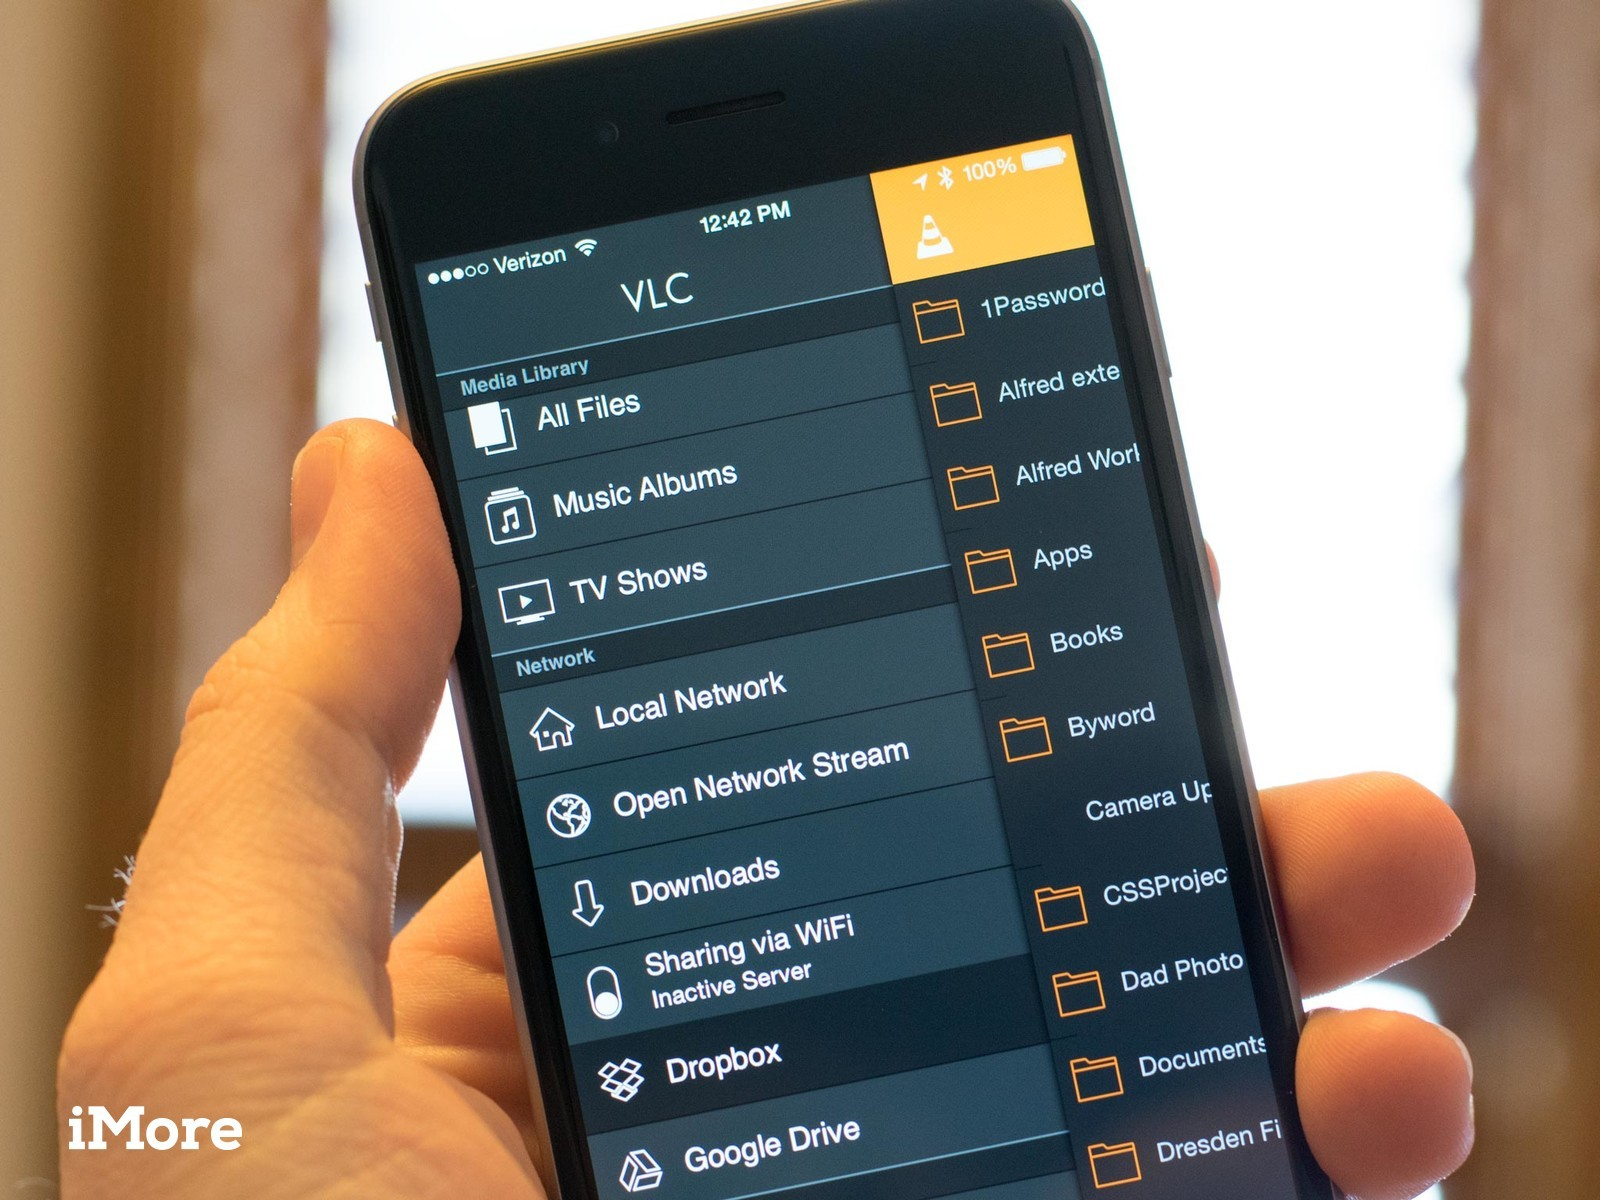 VLC returns to the App Store with support for iPhone 6, 6 Plus, and so much more